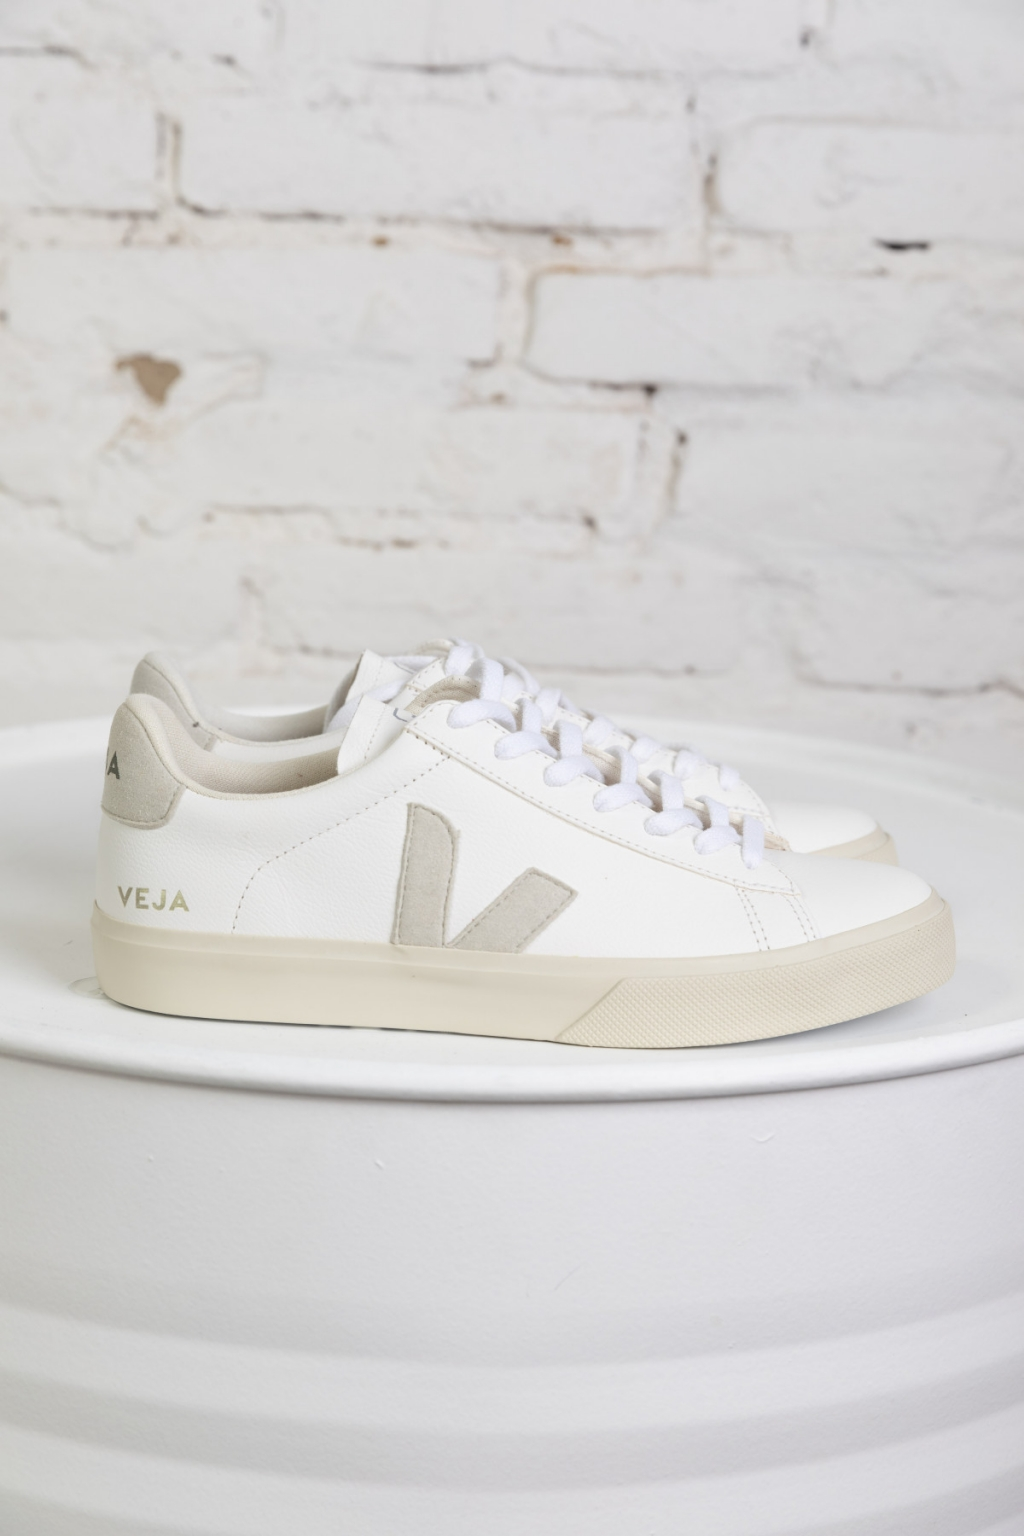 Veja sneakers now available at shop.societeanonyme.it